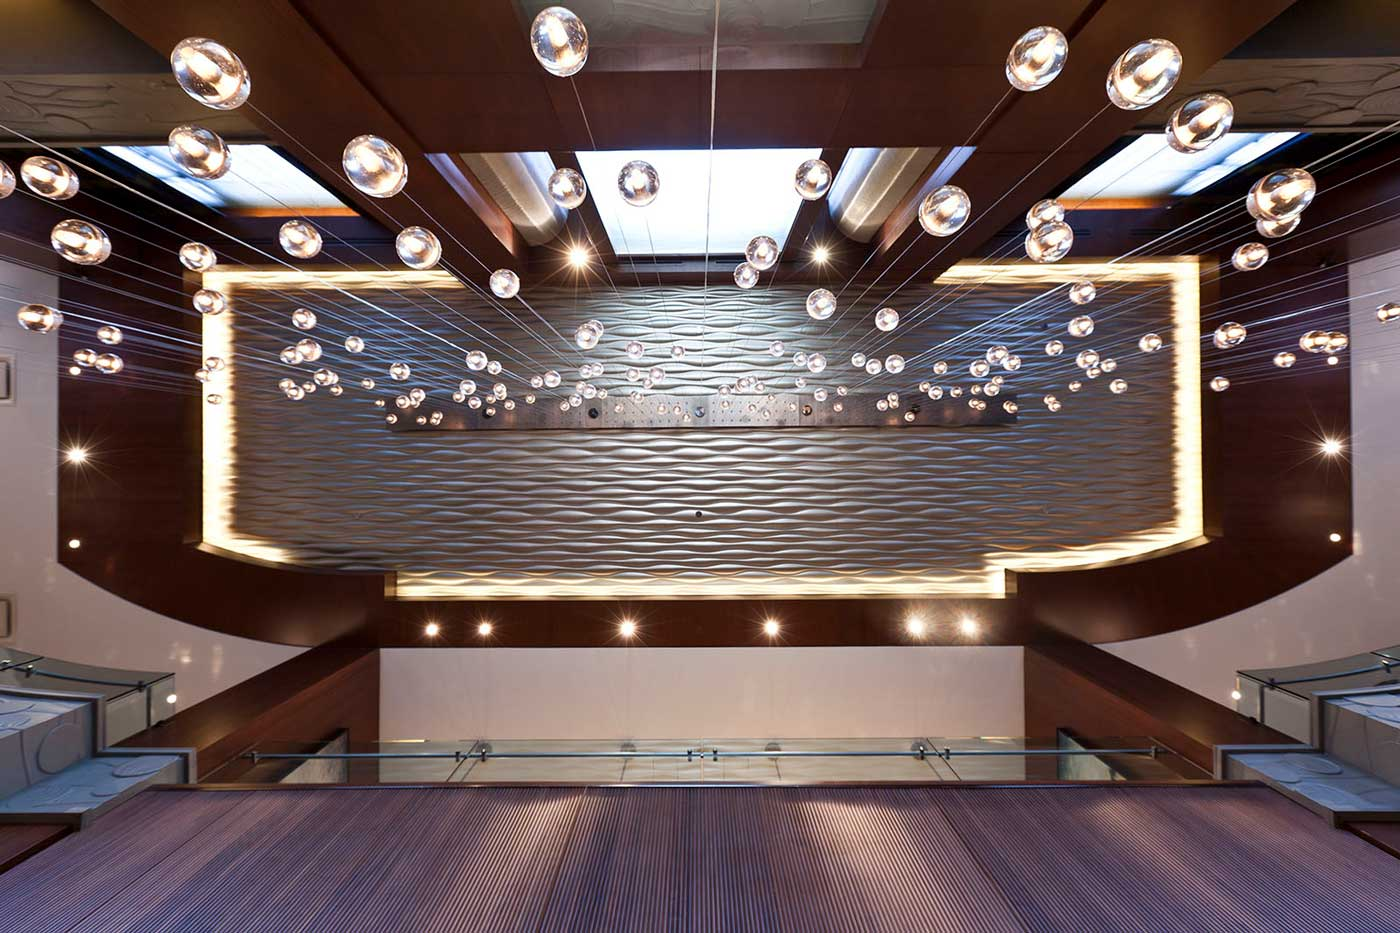 sound systems, sound system installers vancouver, sound systems for pubs and restaurants